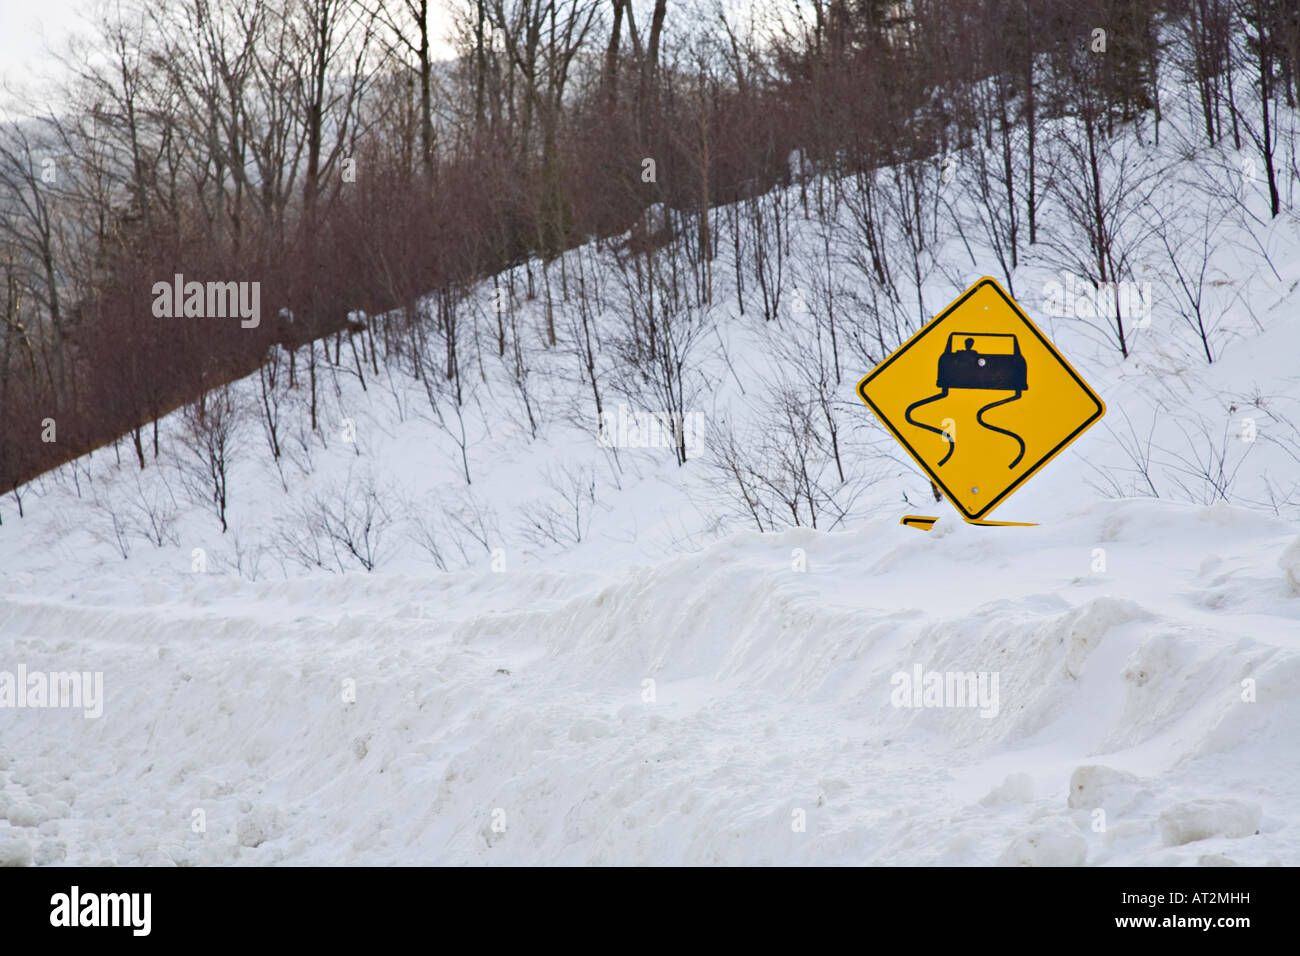 Slippery road sign covered by snow - Stock Image